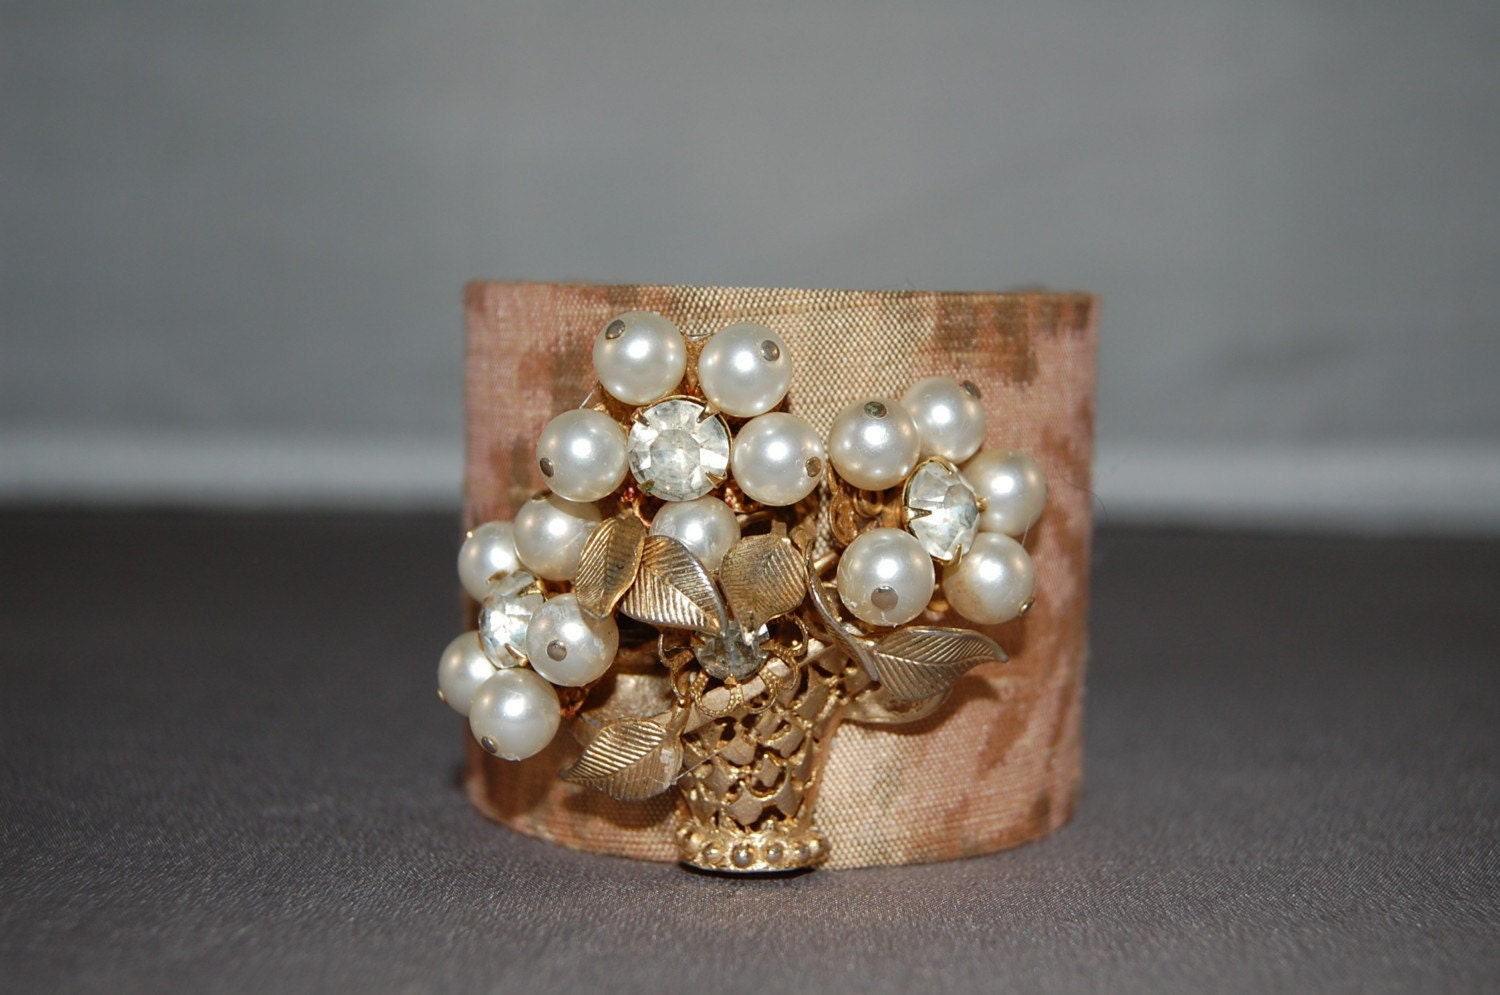 Miss Otis Regrets Cuff Bracelet